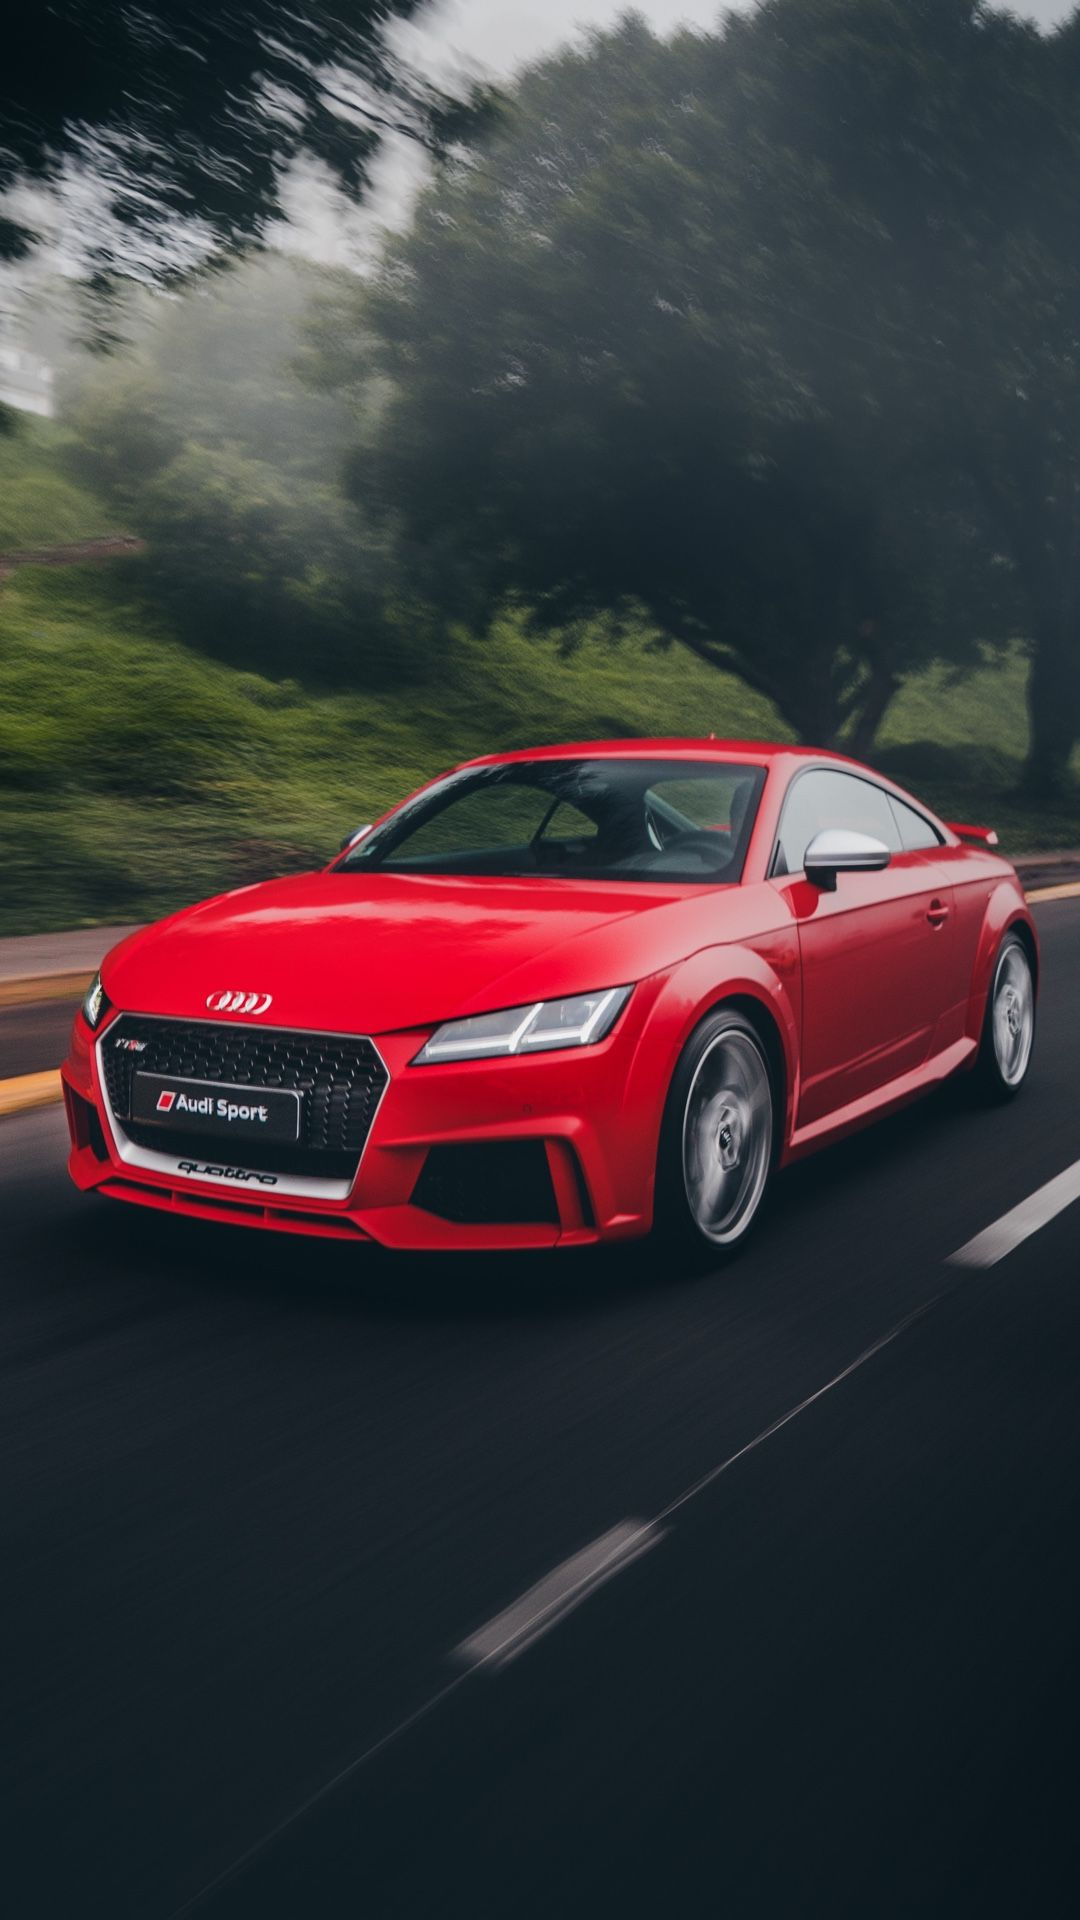 Car Wallpaper For Your Iphone Xs From Everpix Wallpaper Wallpaperiphone Cars Red Audi Audi Sports Car Audi Coupe